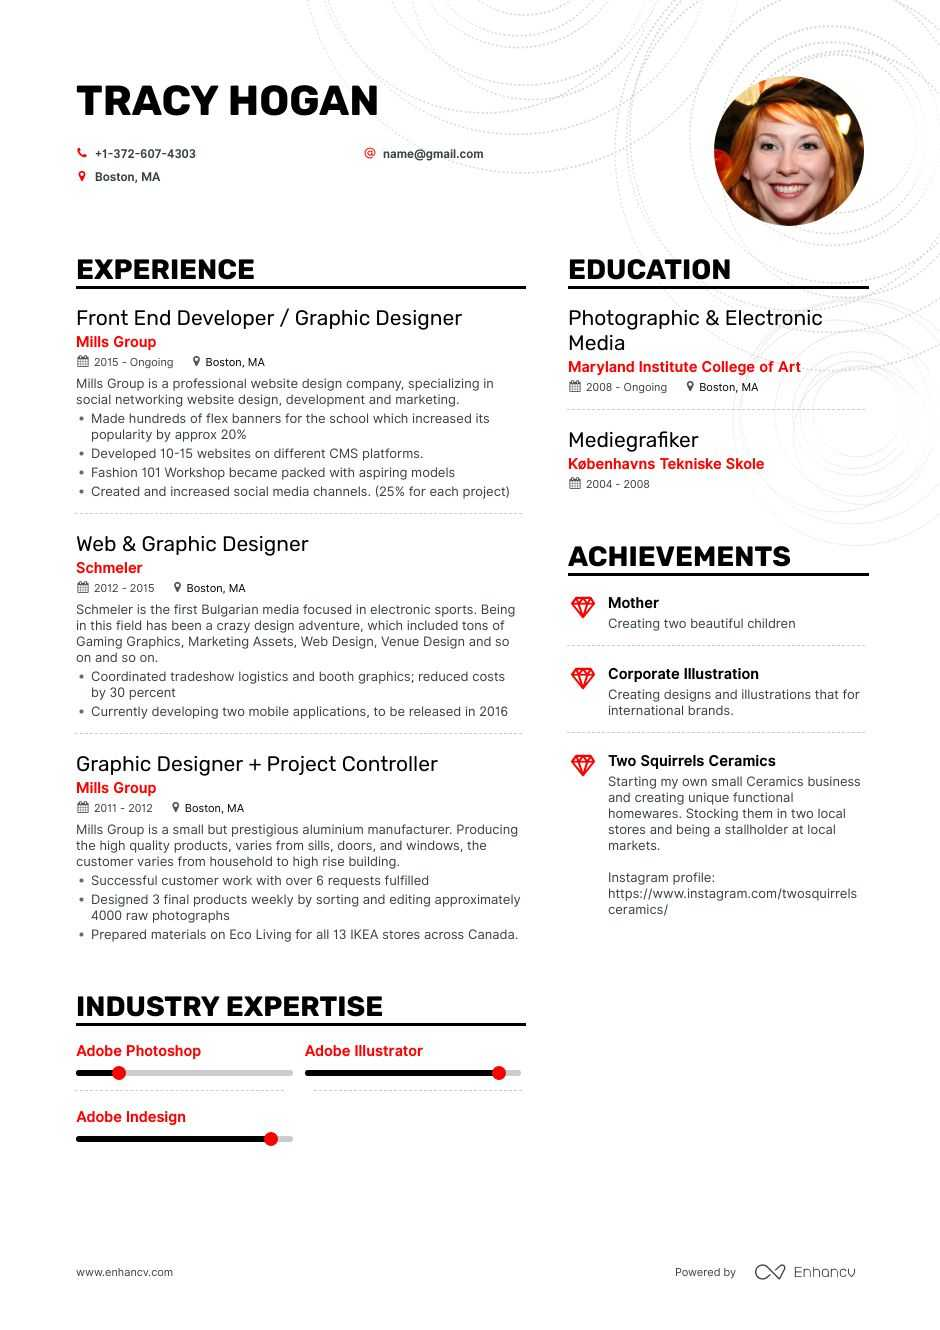 freelance graphic designer resume examples pro tips featured enhancv beginner fashion Resume Beginner Fashion Designer Resume